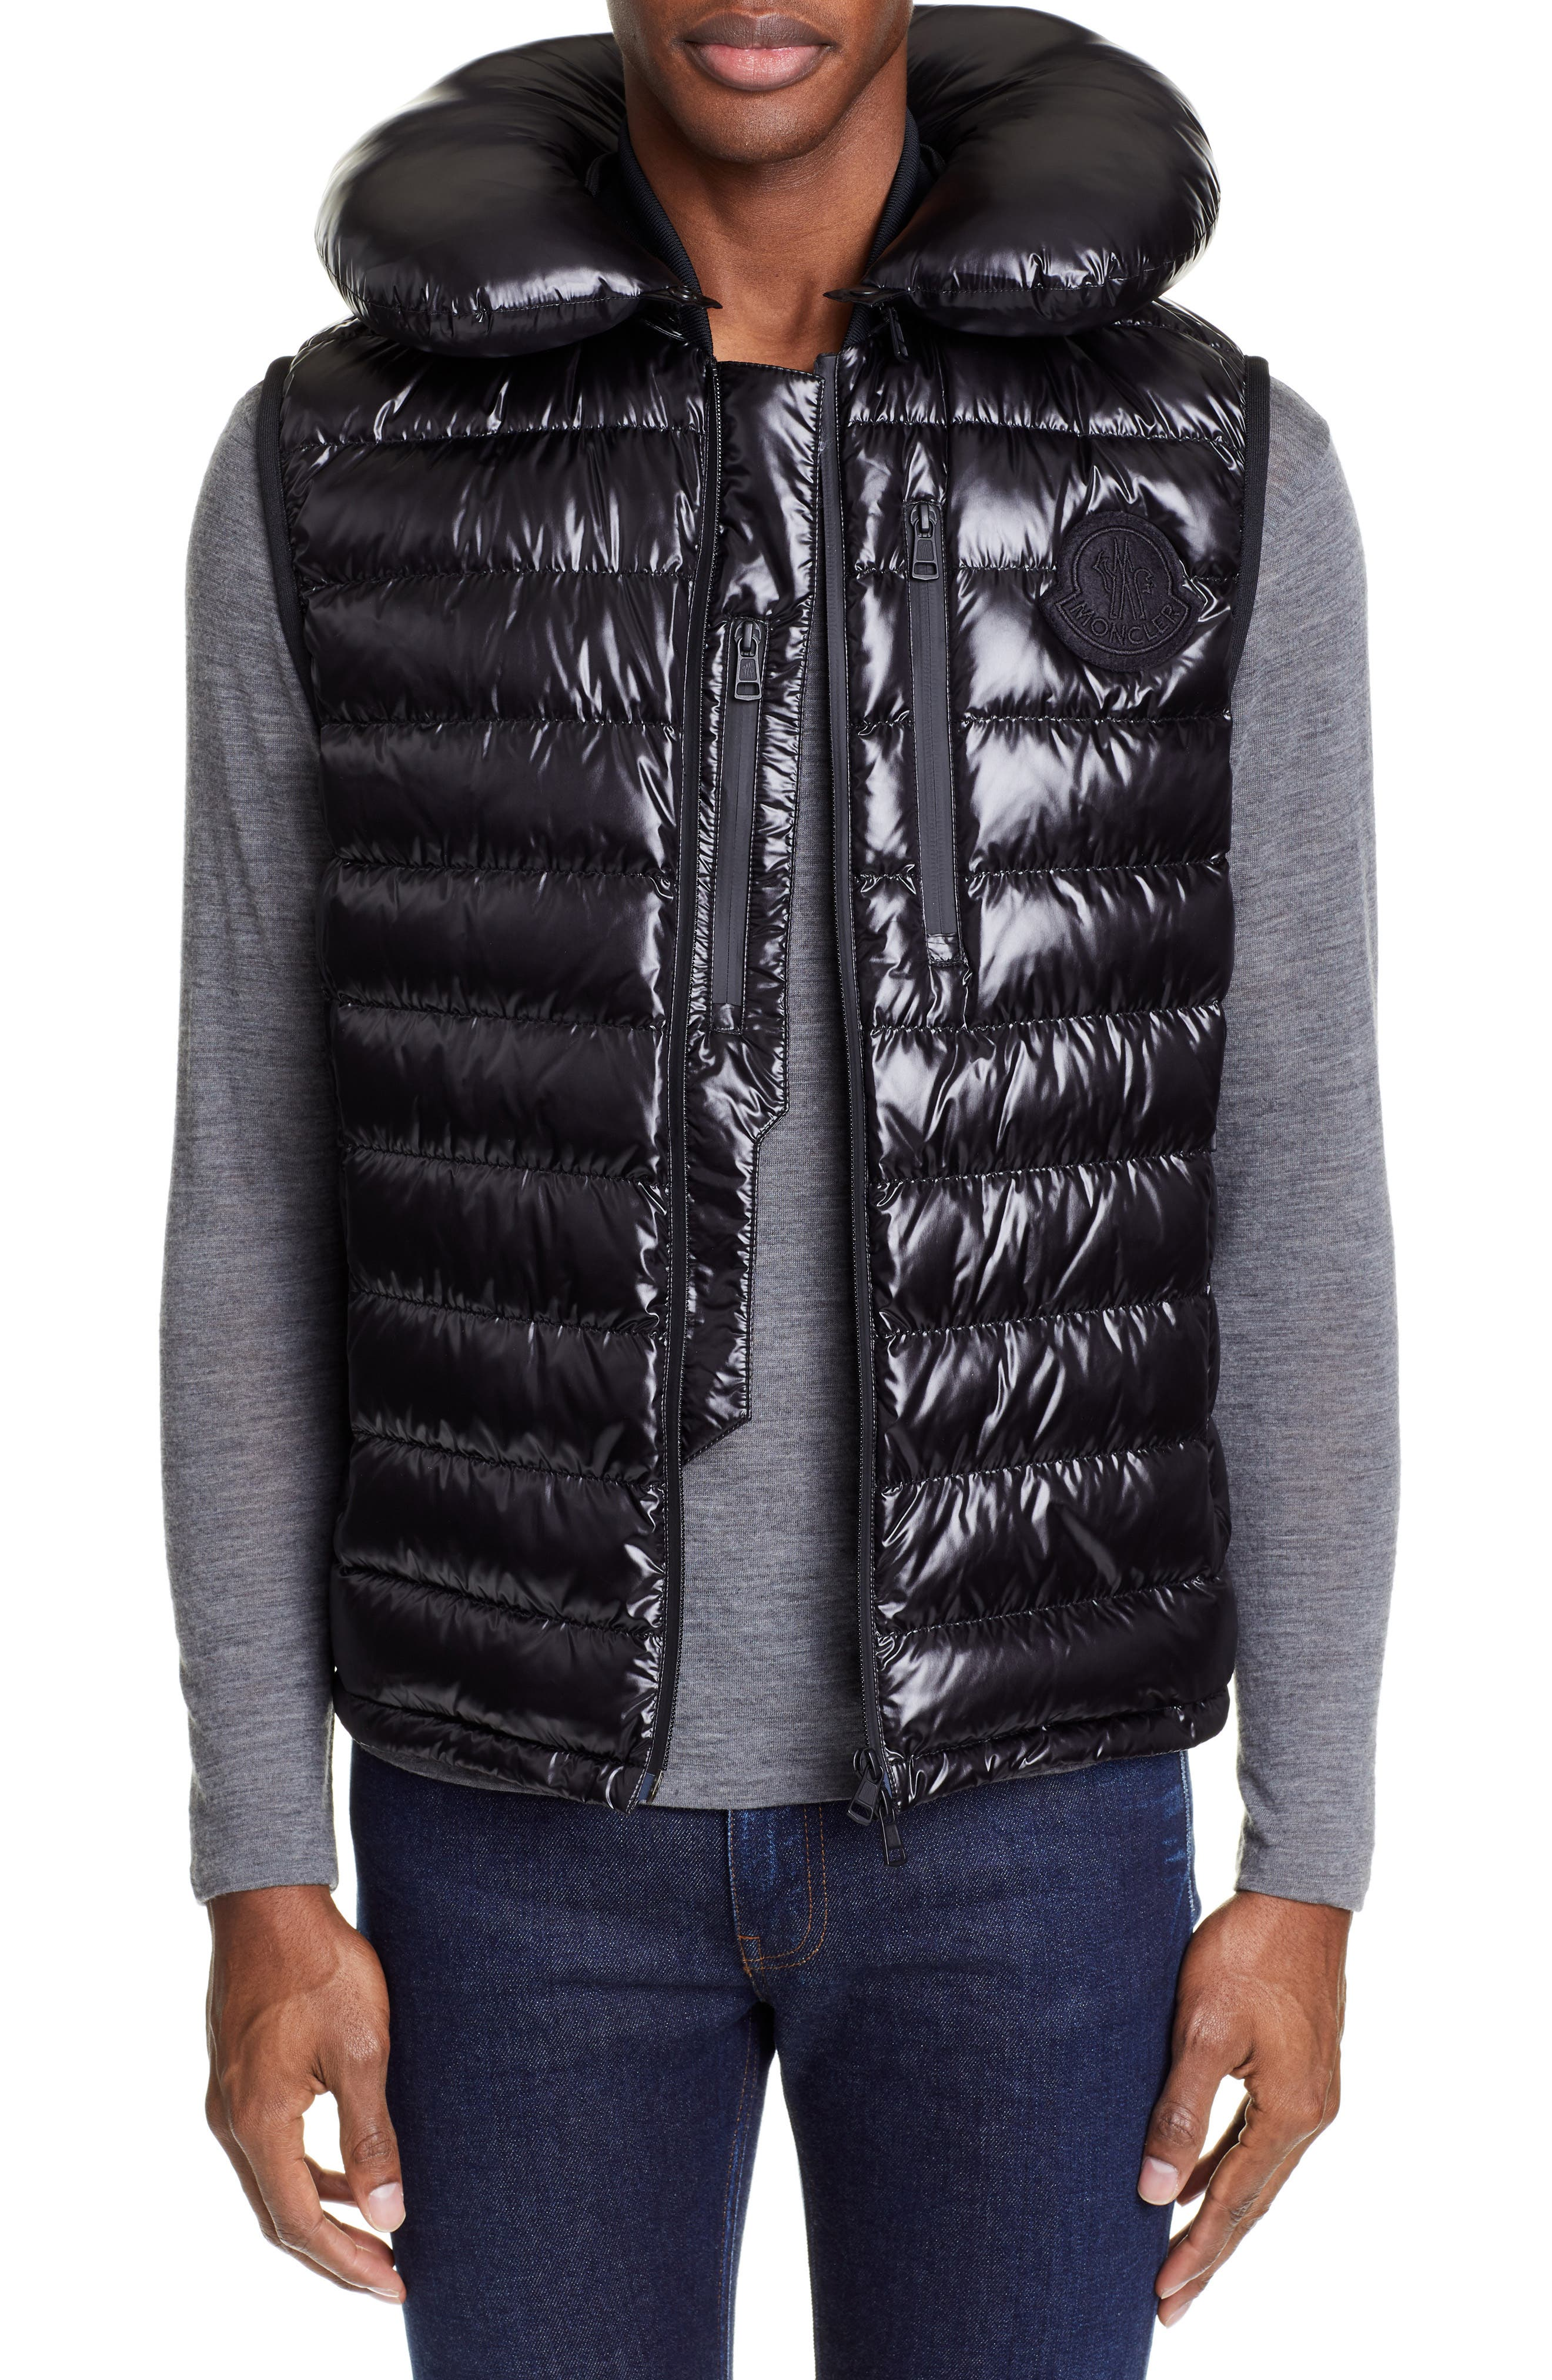 Moncler Genius By Moncler Gironde Down Vest, Black